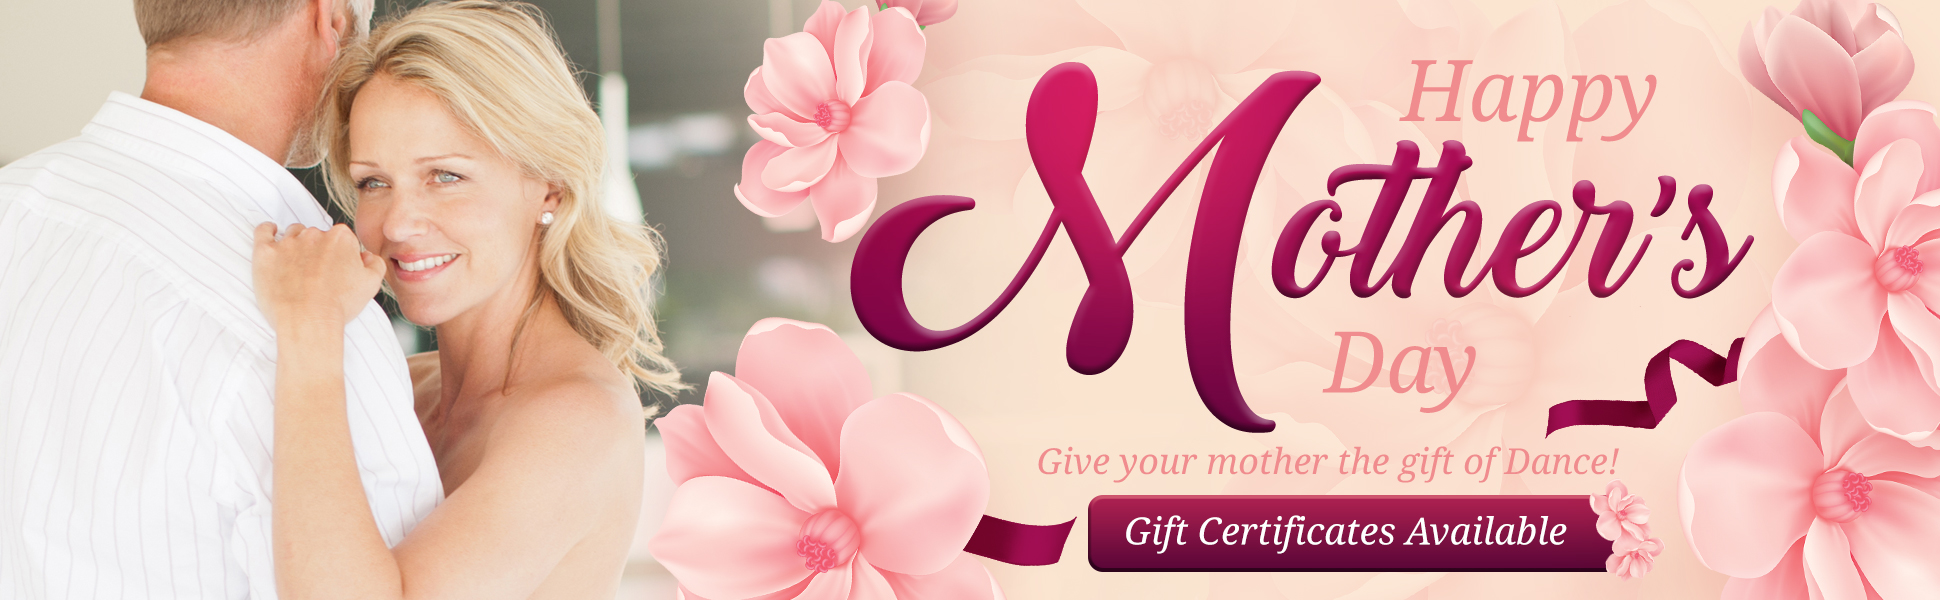 Give The Gift of Dance to Mom